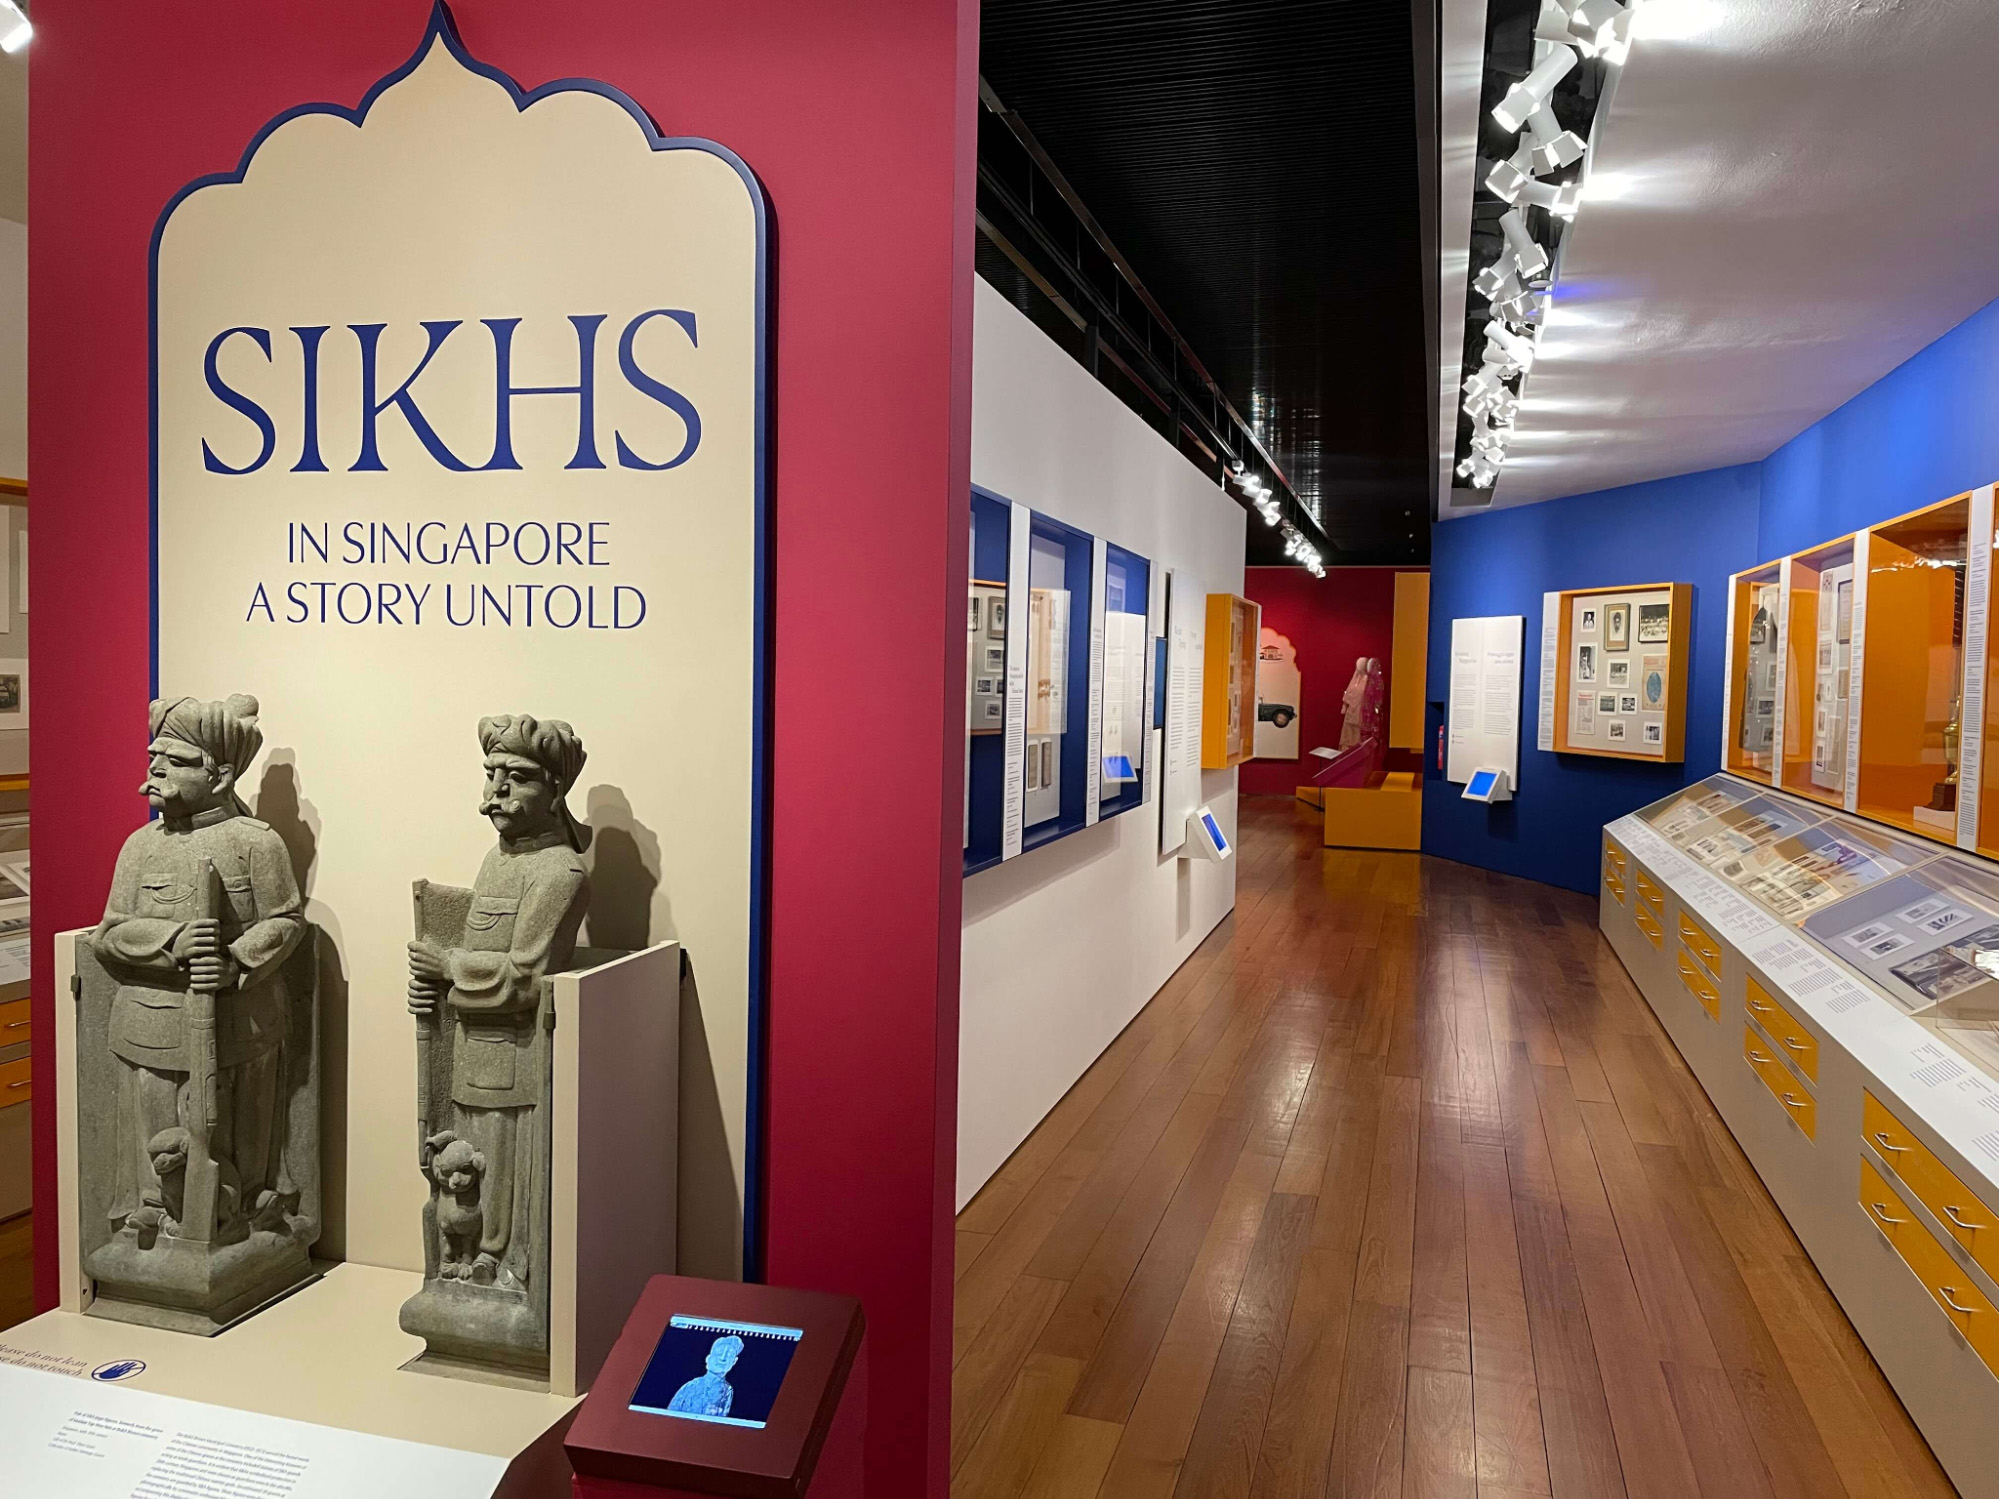 Sikhs in Singapore: A Story Untold